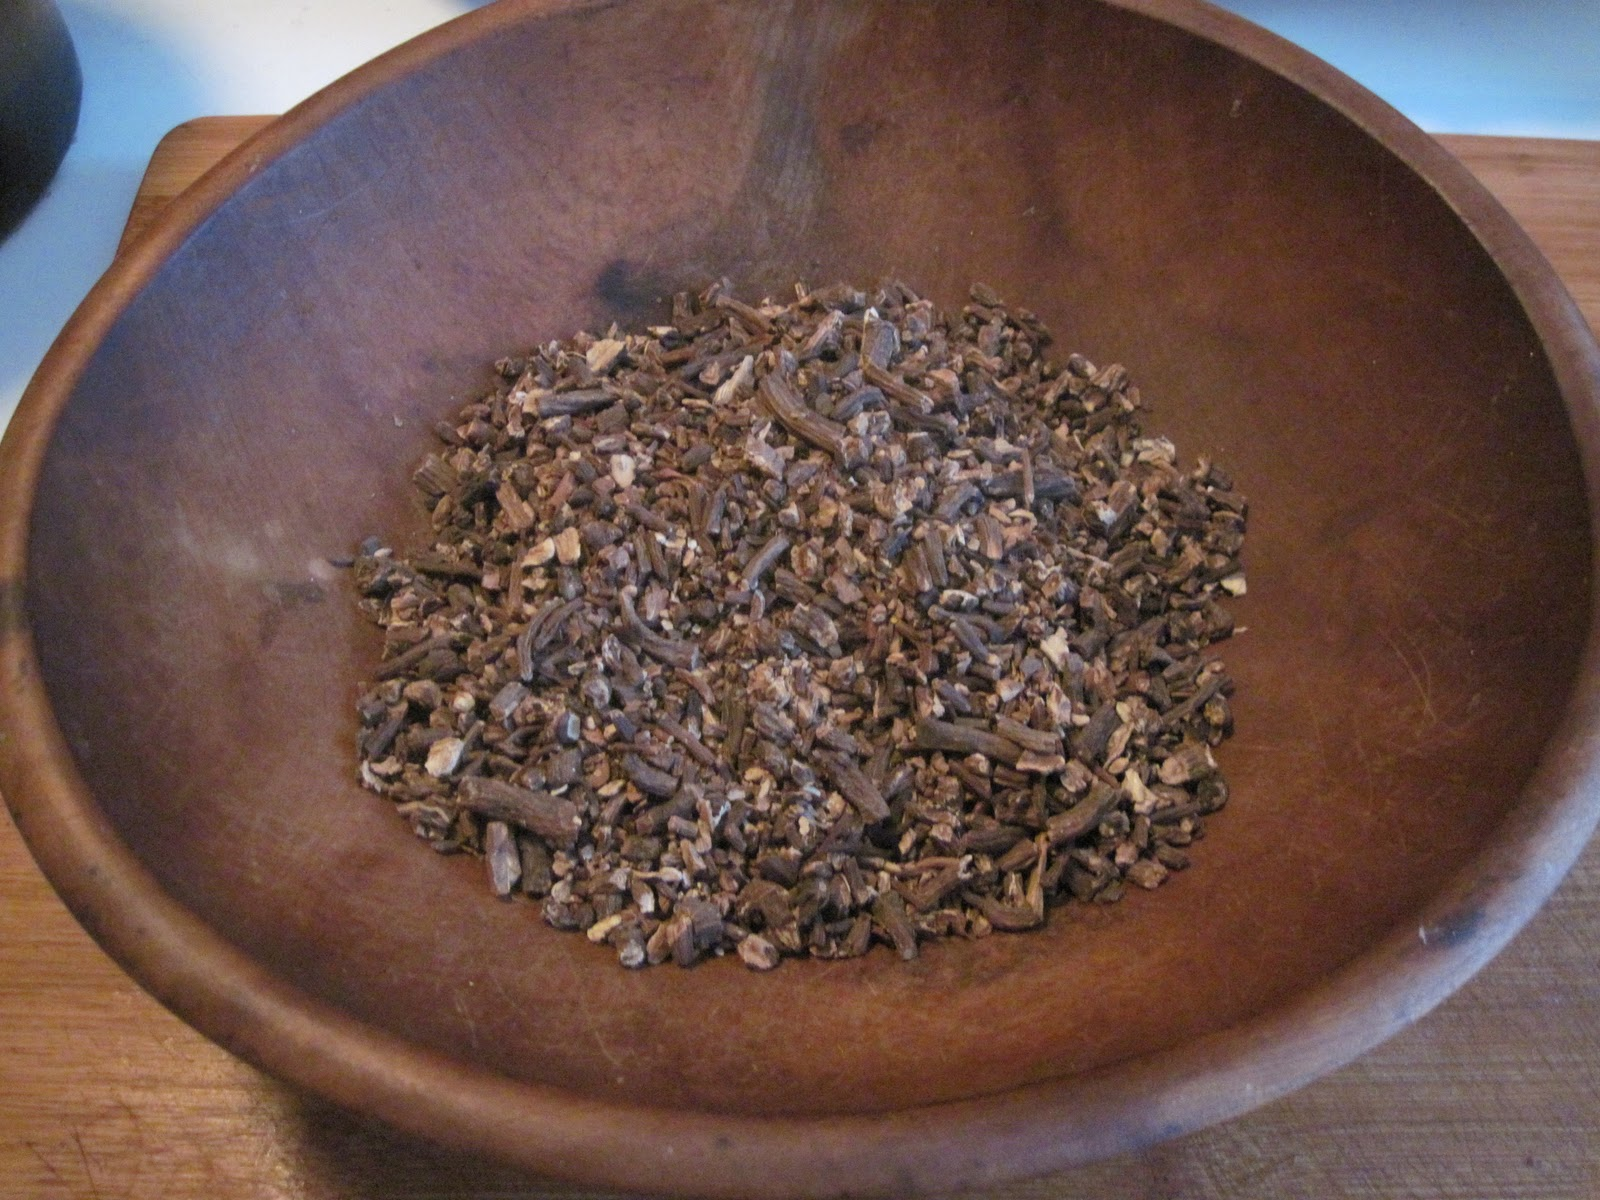 ... Of Our Health: DANDELION ROOT: A HEALTHY TASTY COFFEE SUBSTITUTE